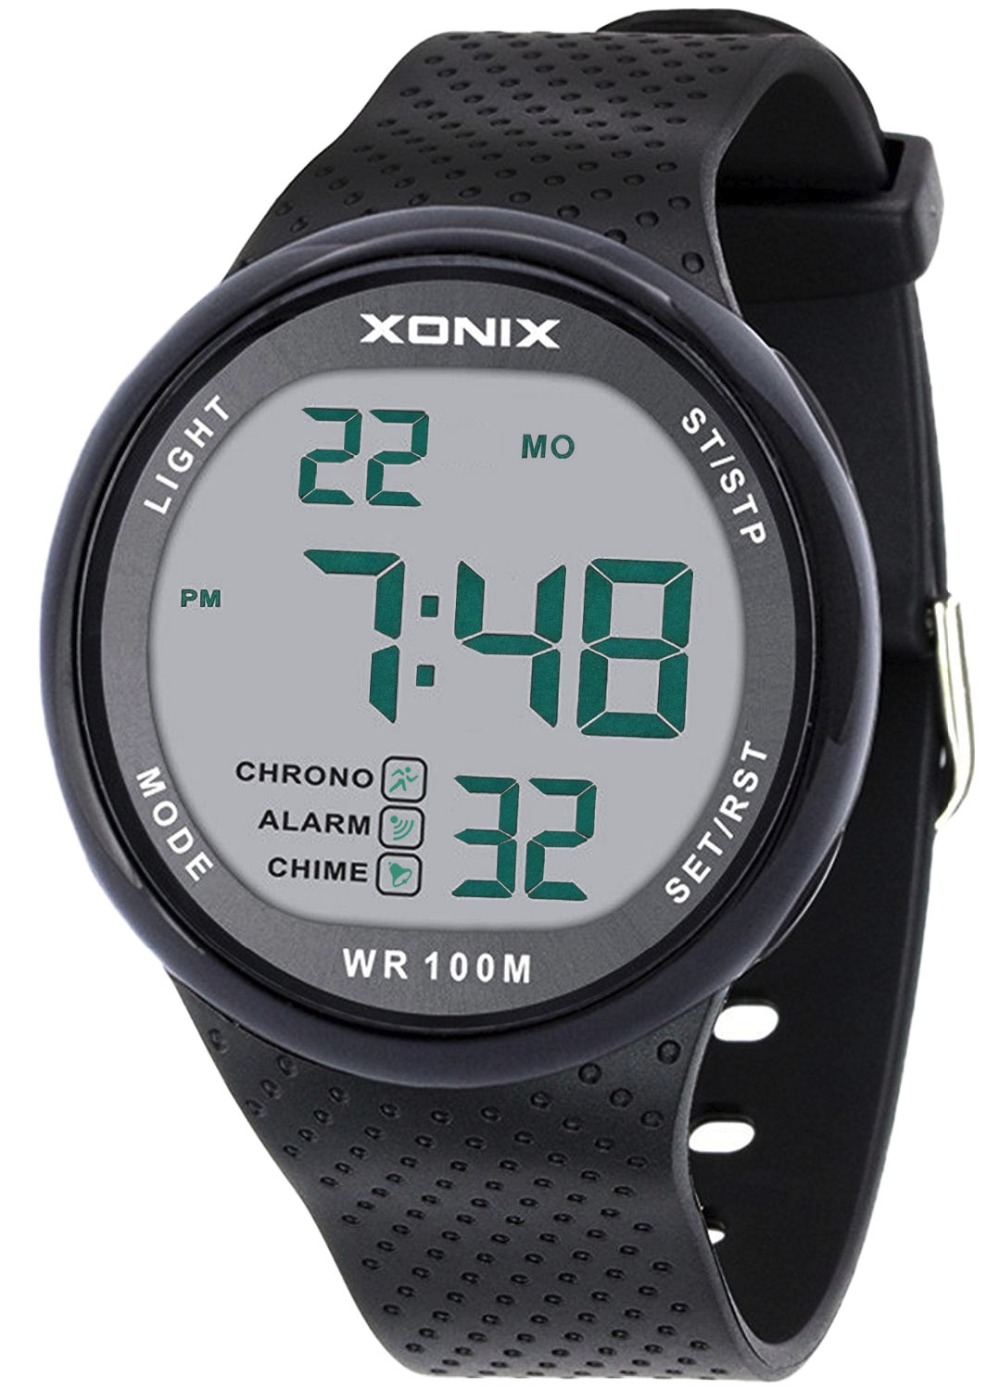 Ergonomic And Minimalist Vogue Men's 100M Waterproof Sports Black Large Digits Digital Dive Watch (Can Be Pressed Underwater)